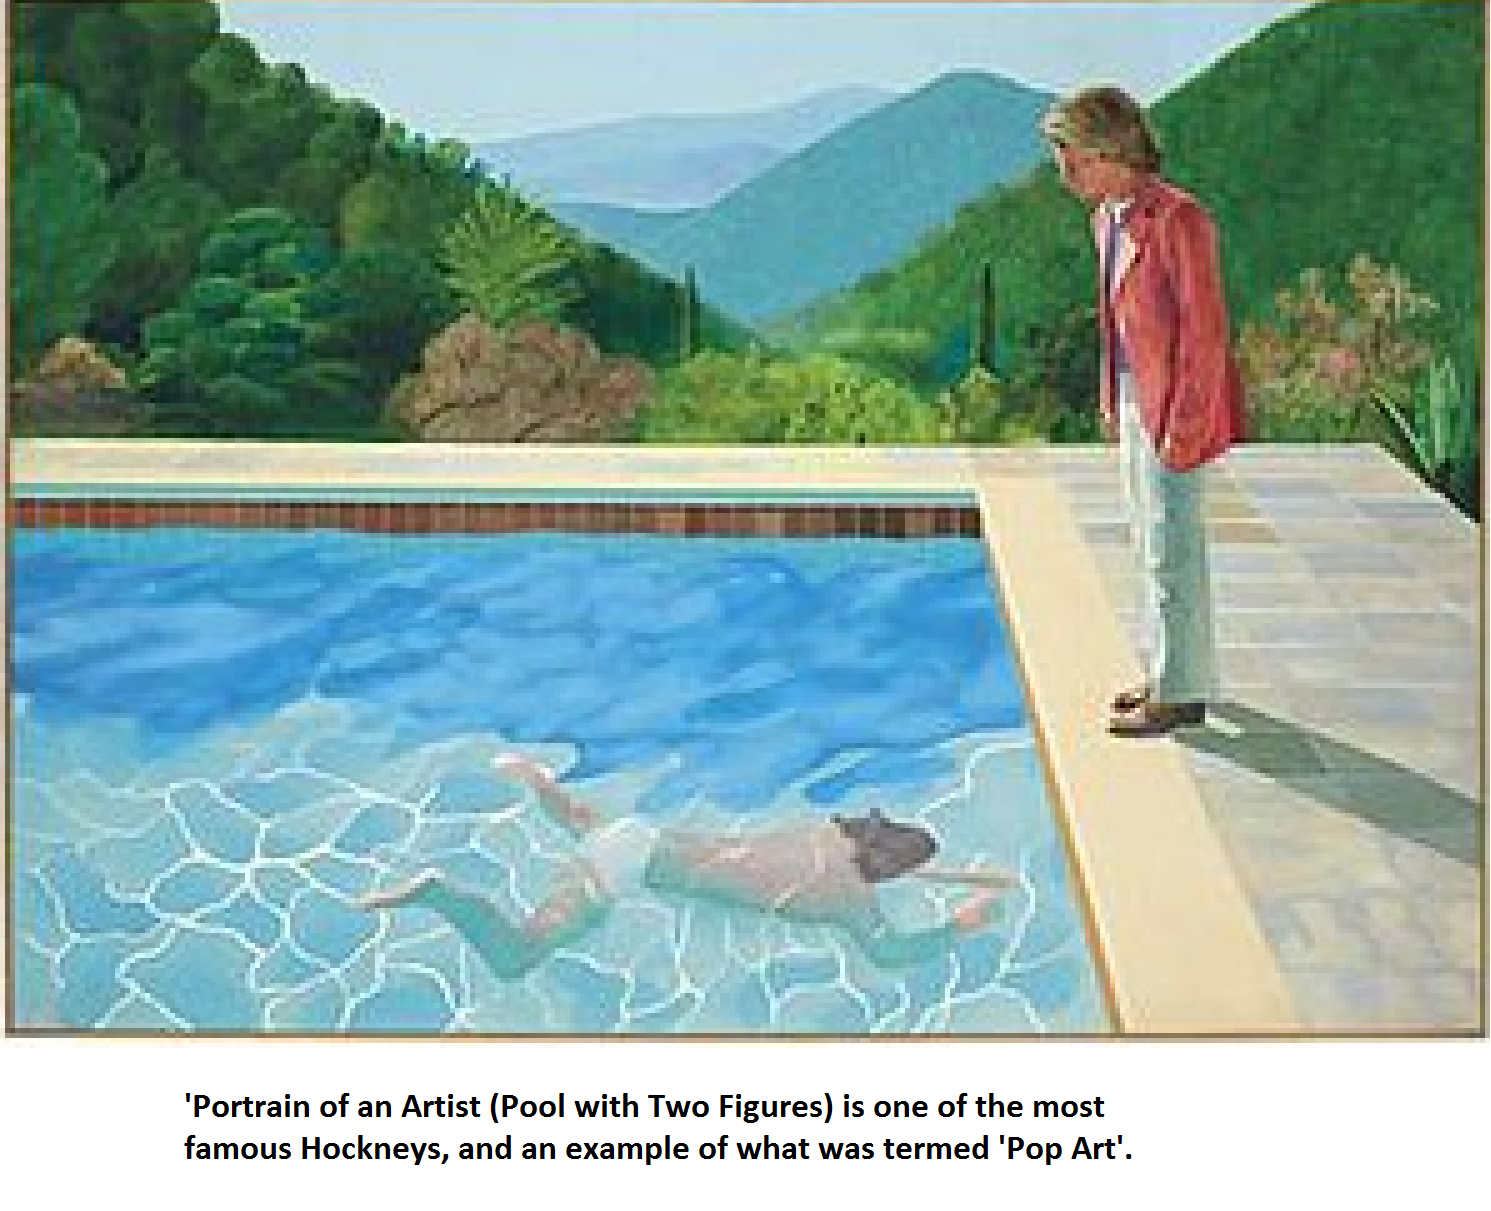 Pool with Two Figures - David Hockney